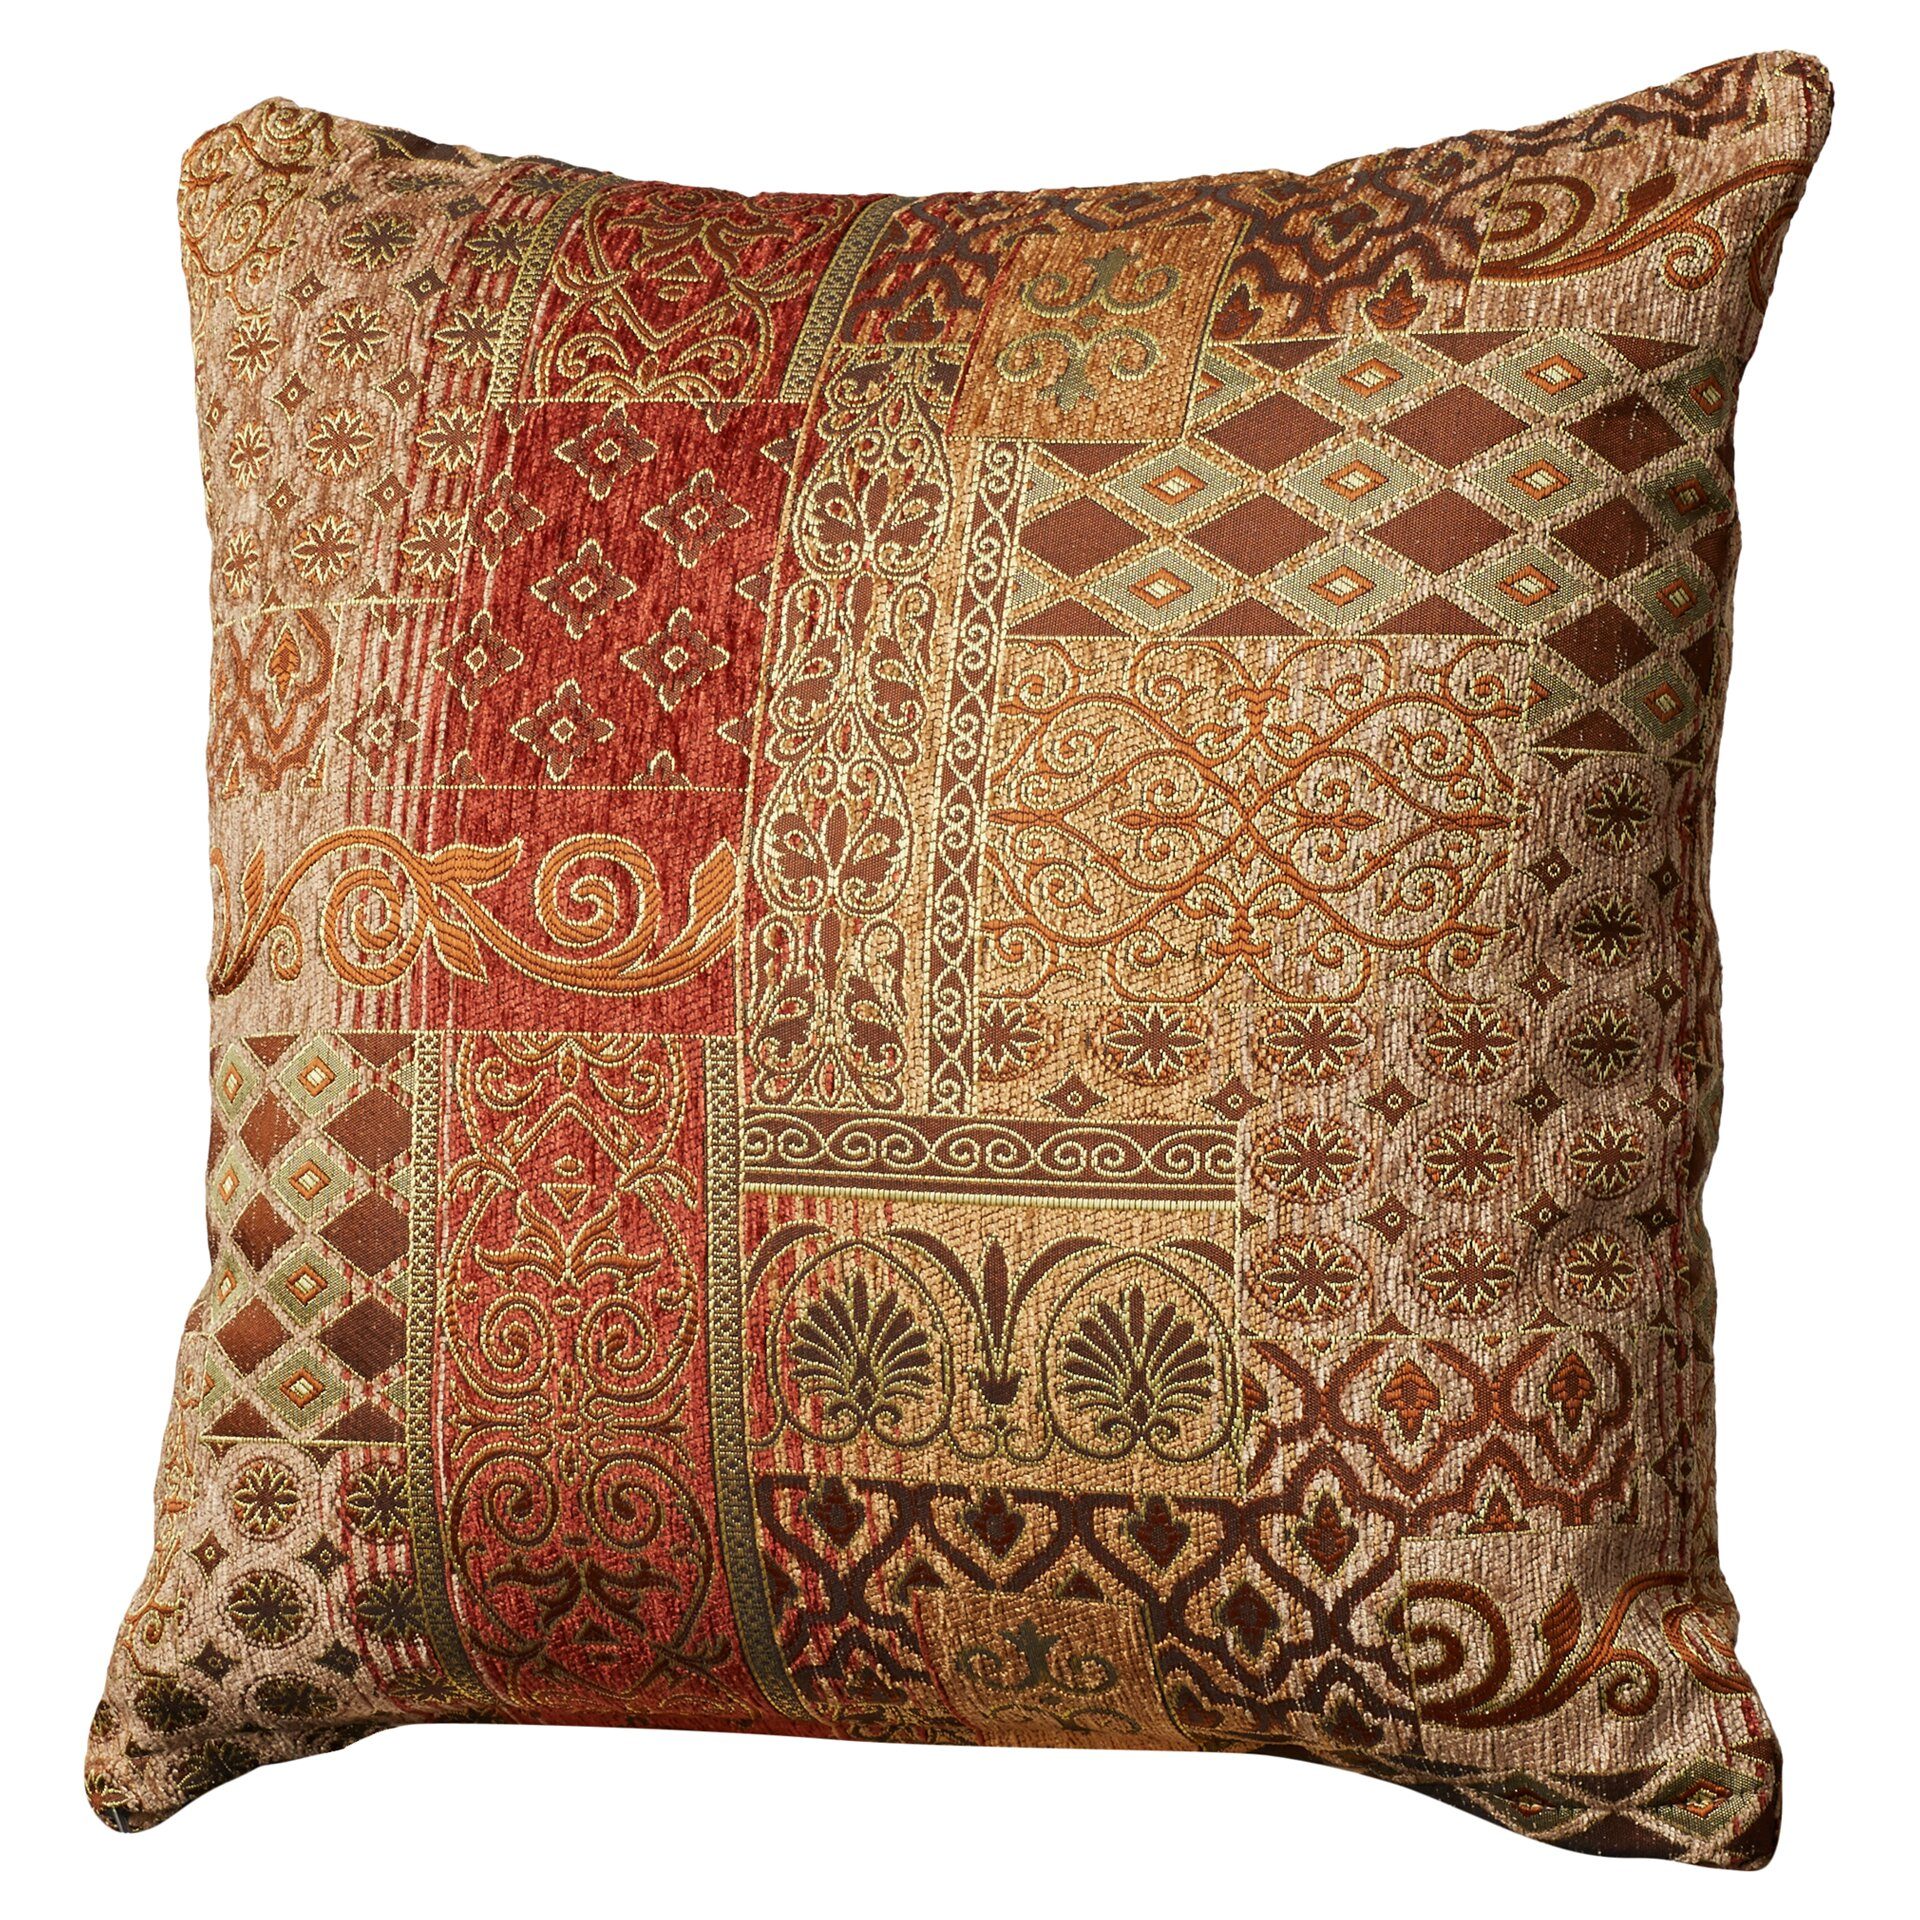 Decorative Pillows Images : Bungalow Rose Lenzee Throw Pillow & Reviews Wayfair